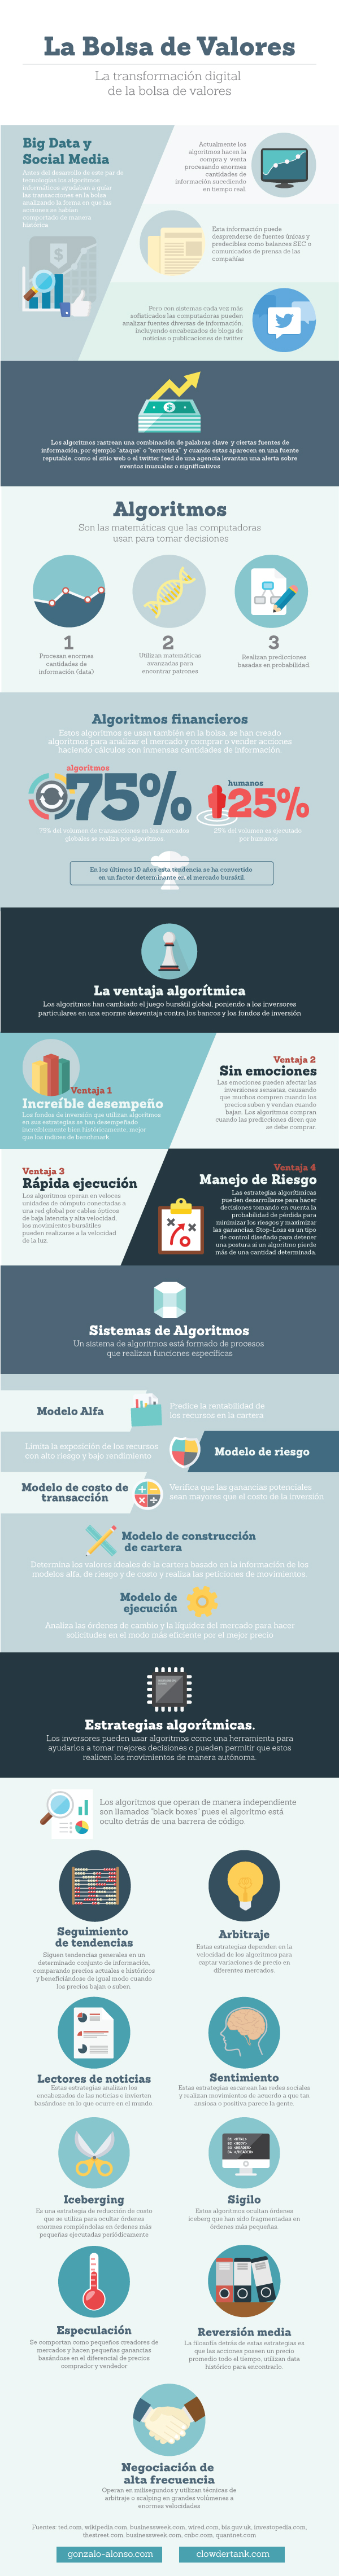 Transformación digital de la Bolsa de Valores